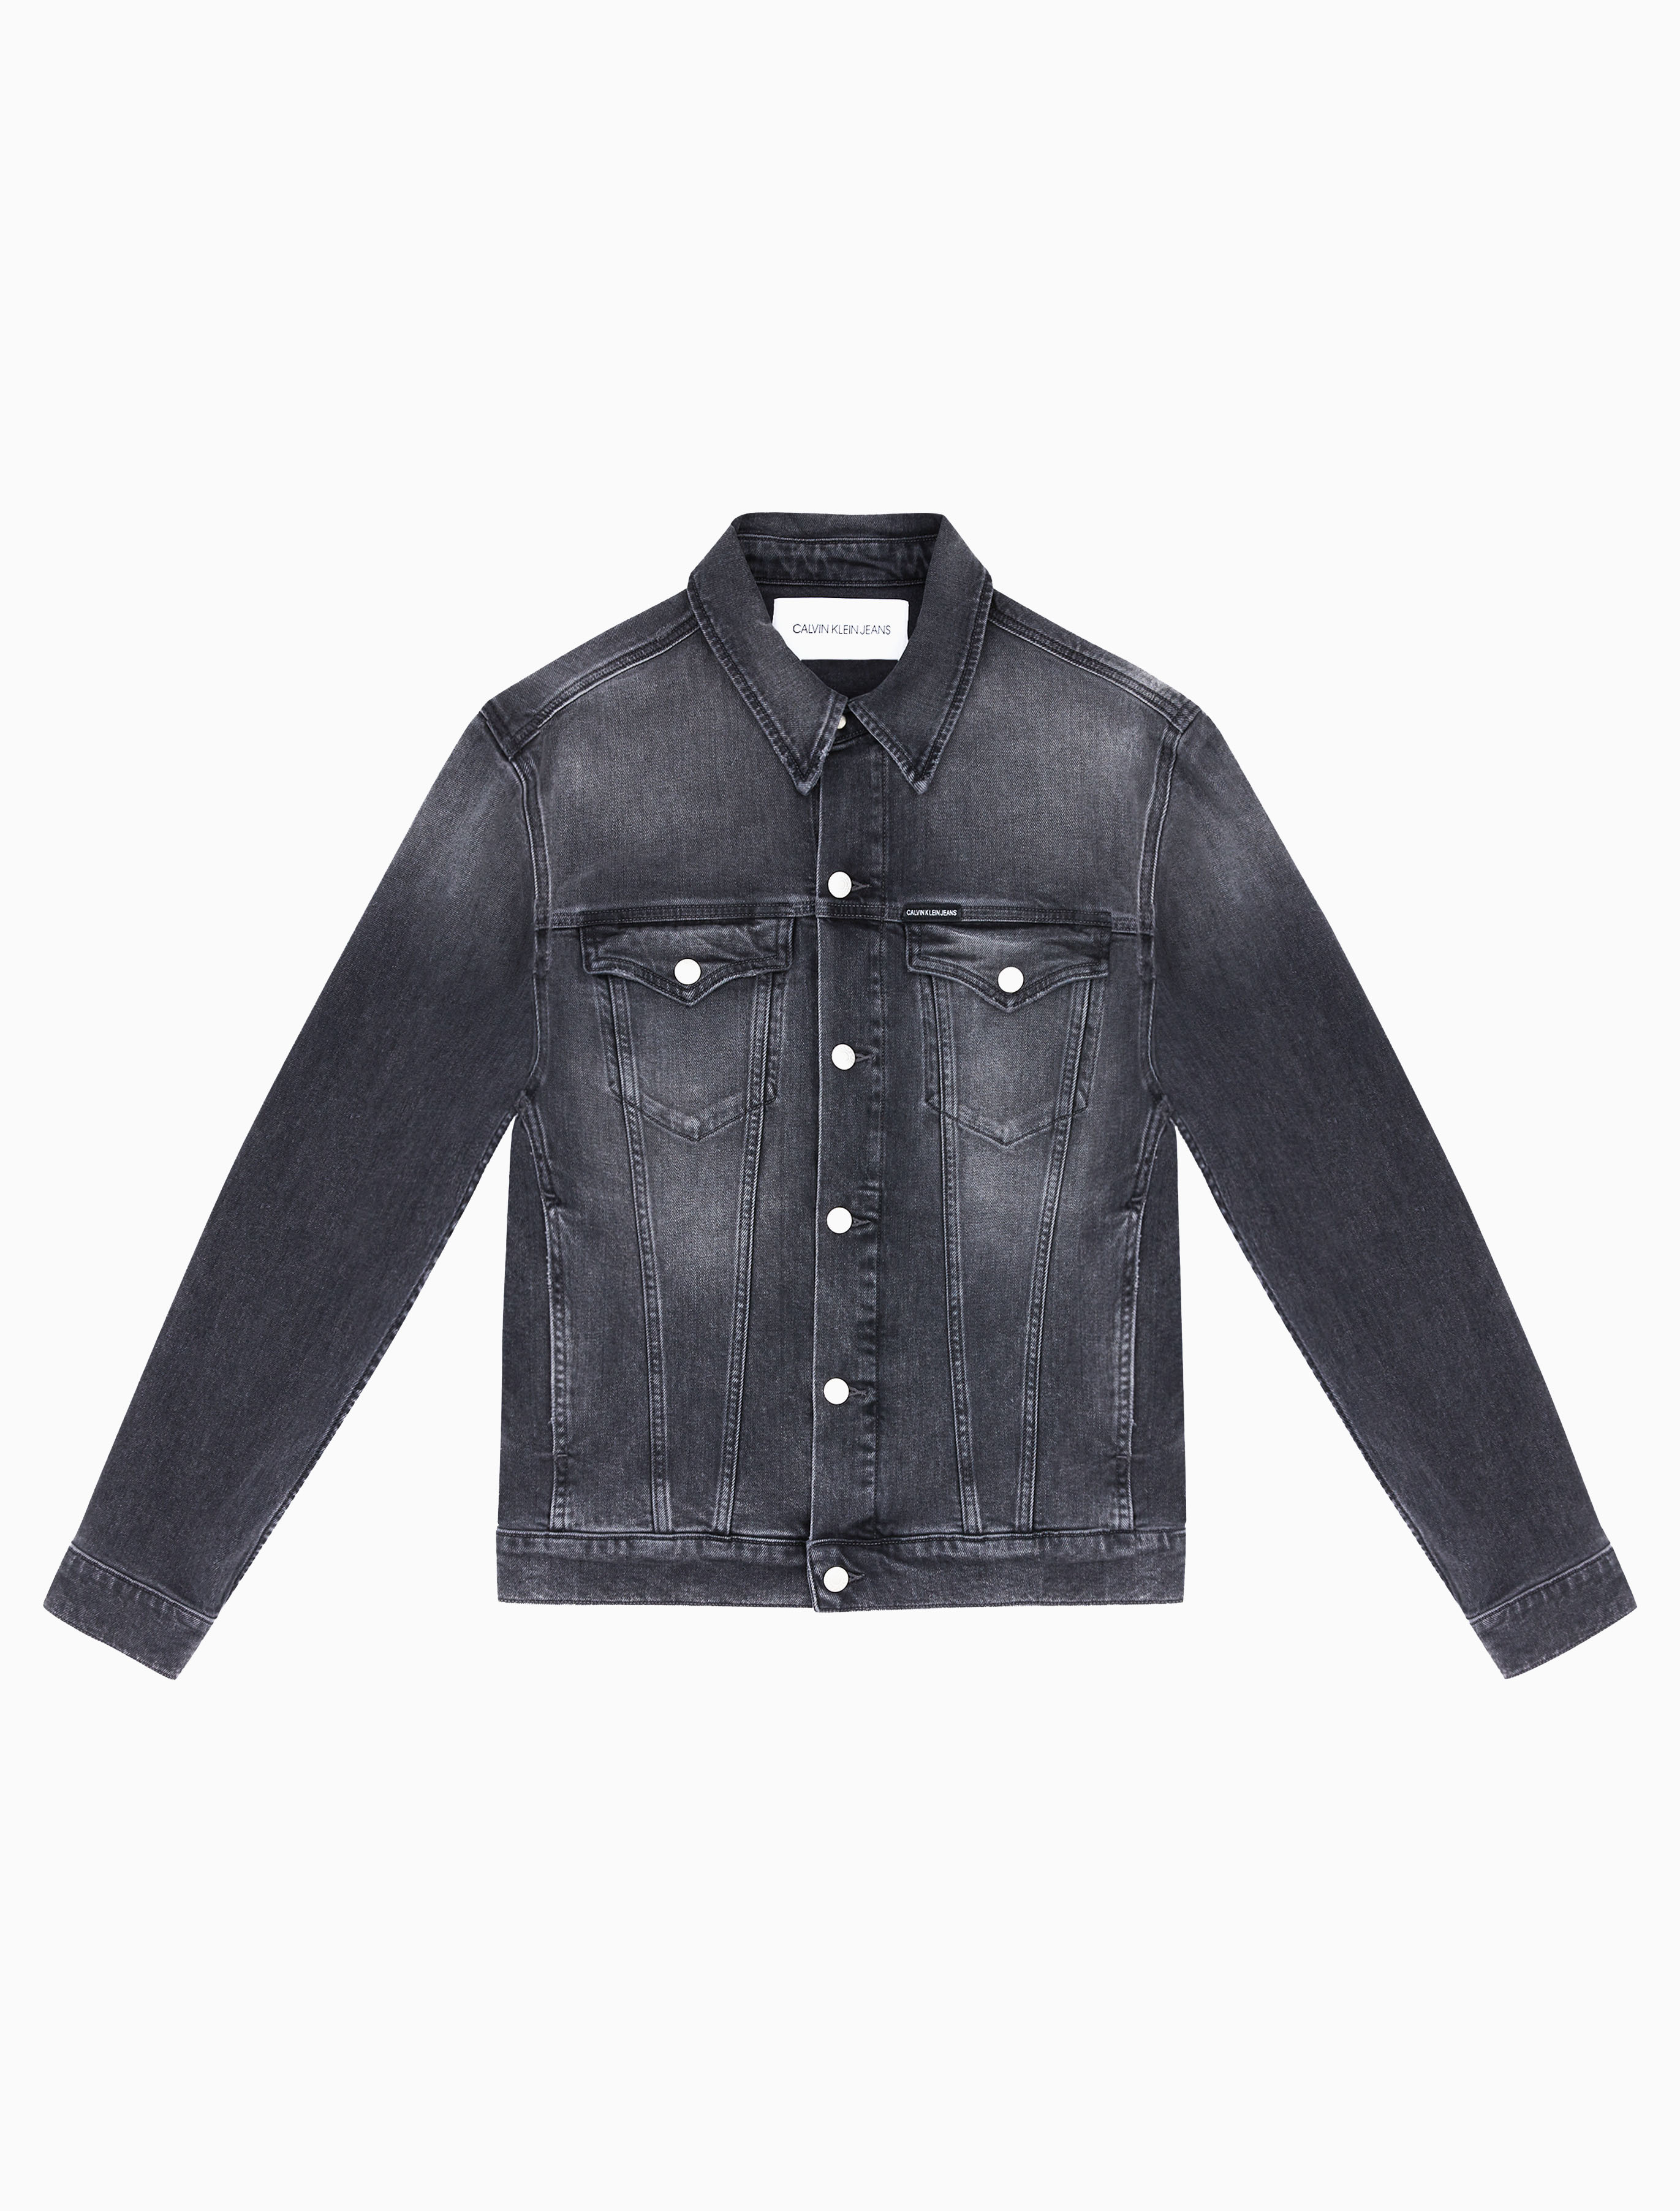 This plus size, stretch denim jacket features a basic collar